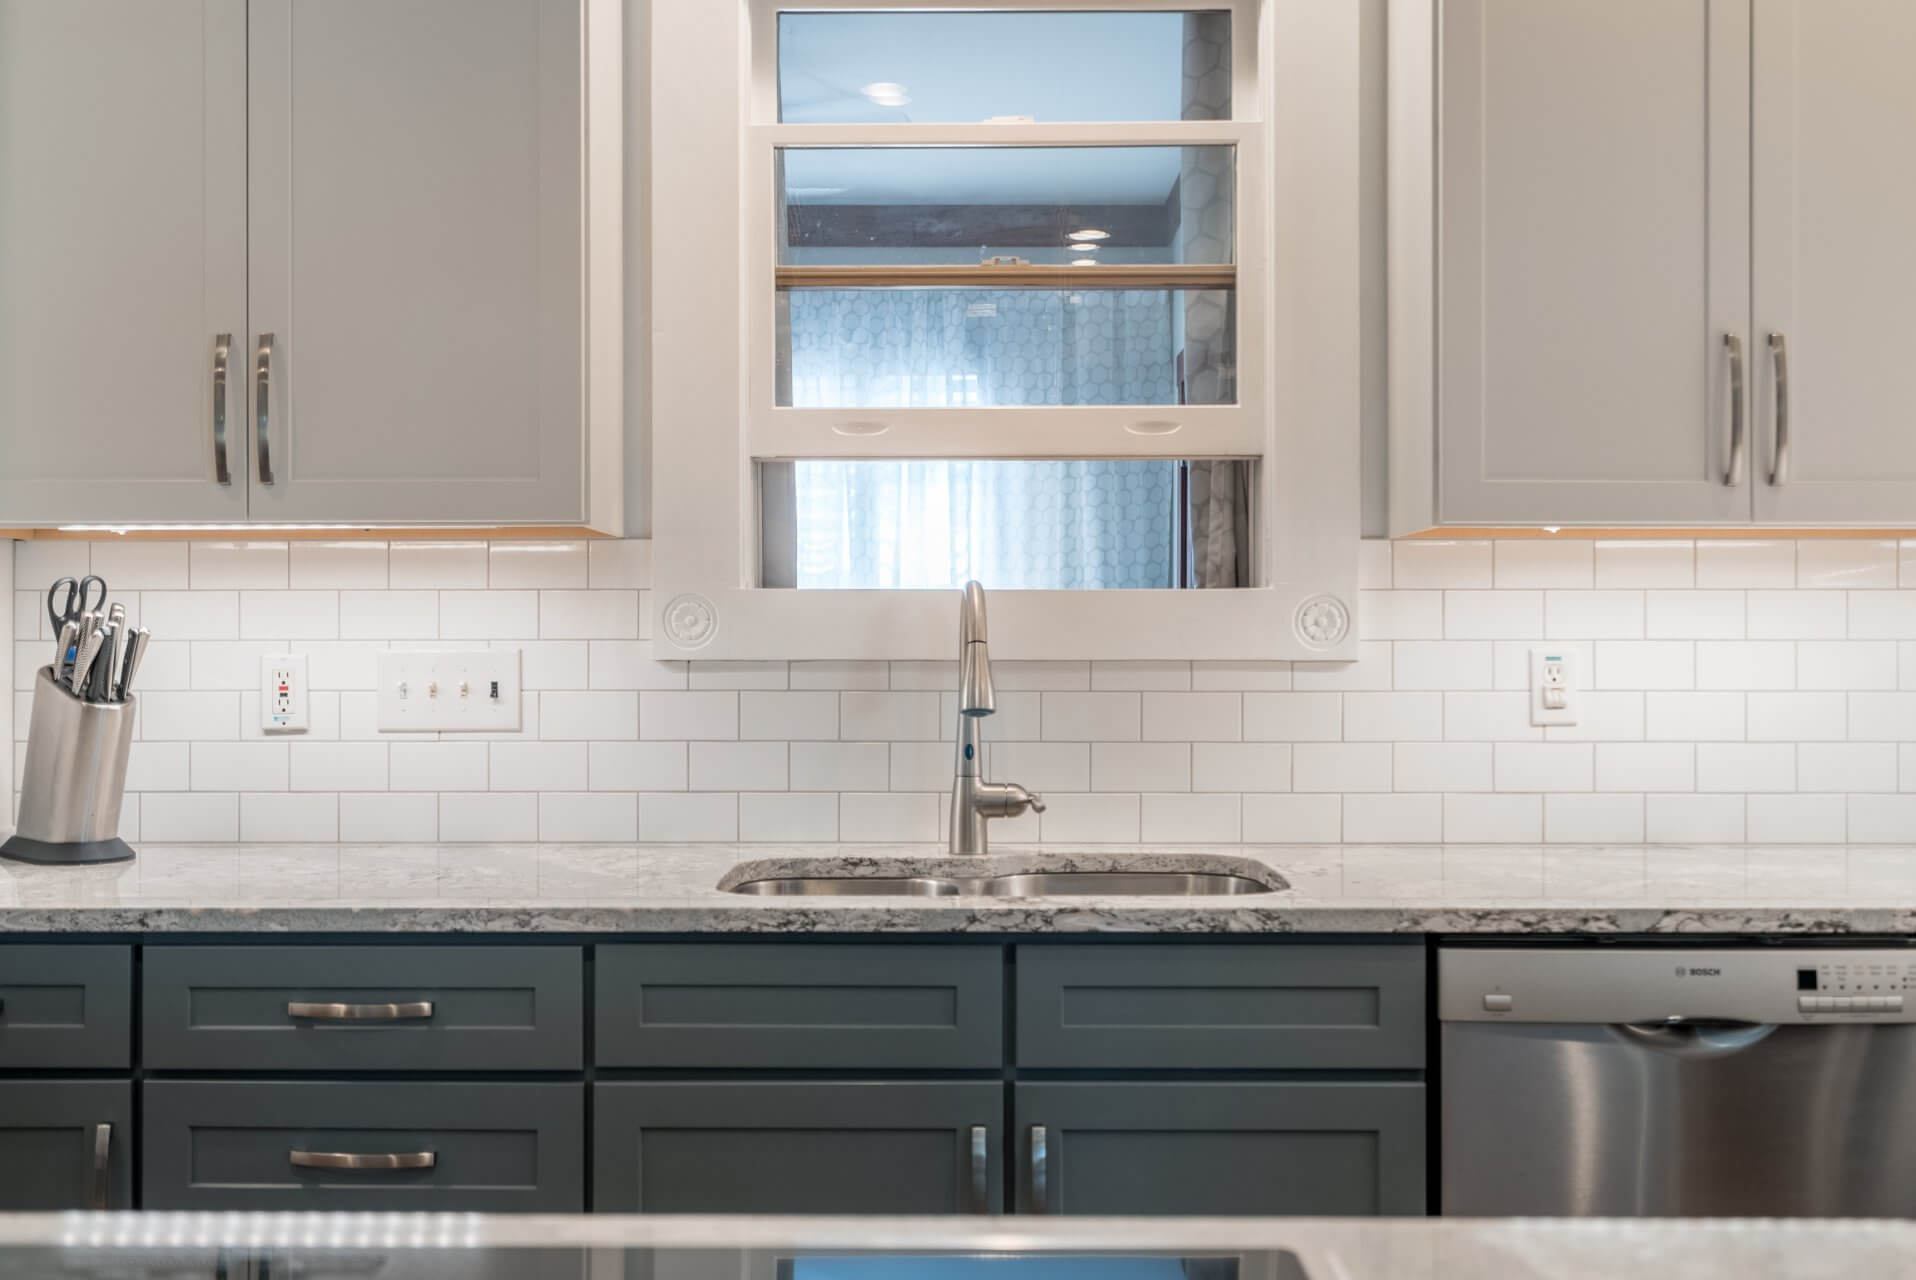 After: A view of traditional white subway tile backsplash used for the kitchen.